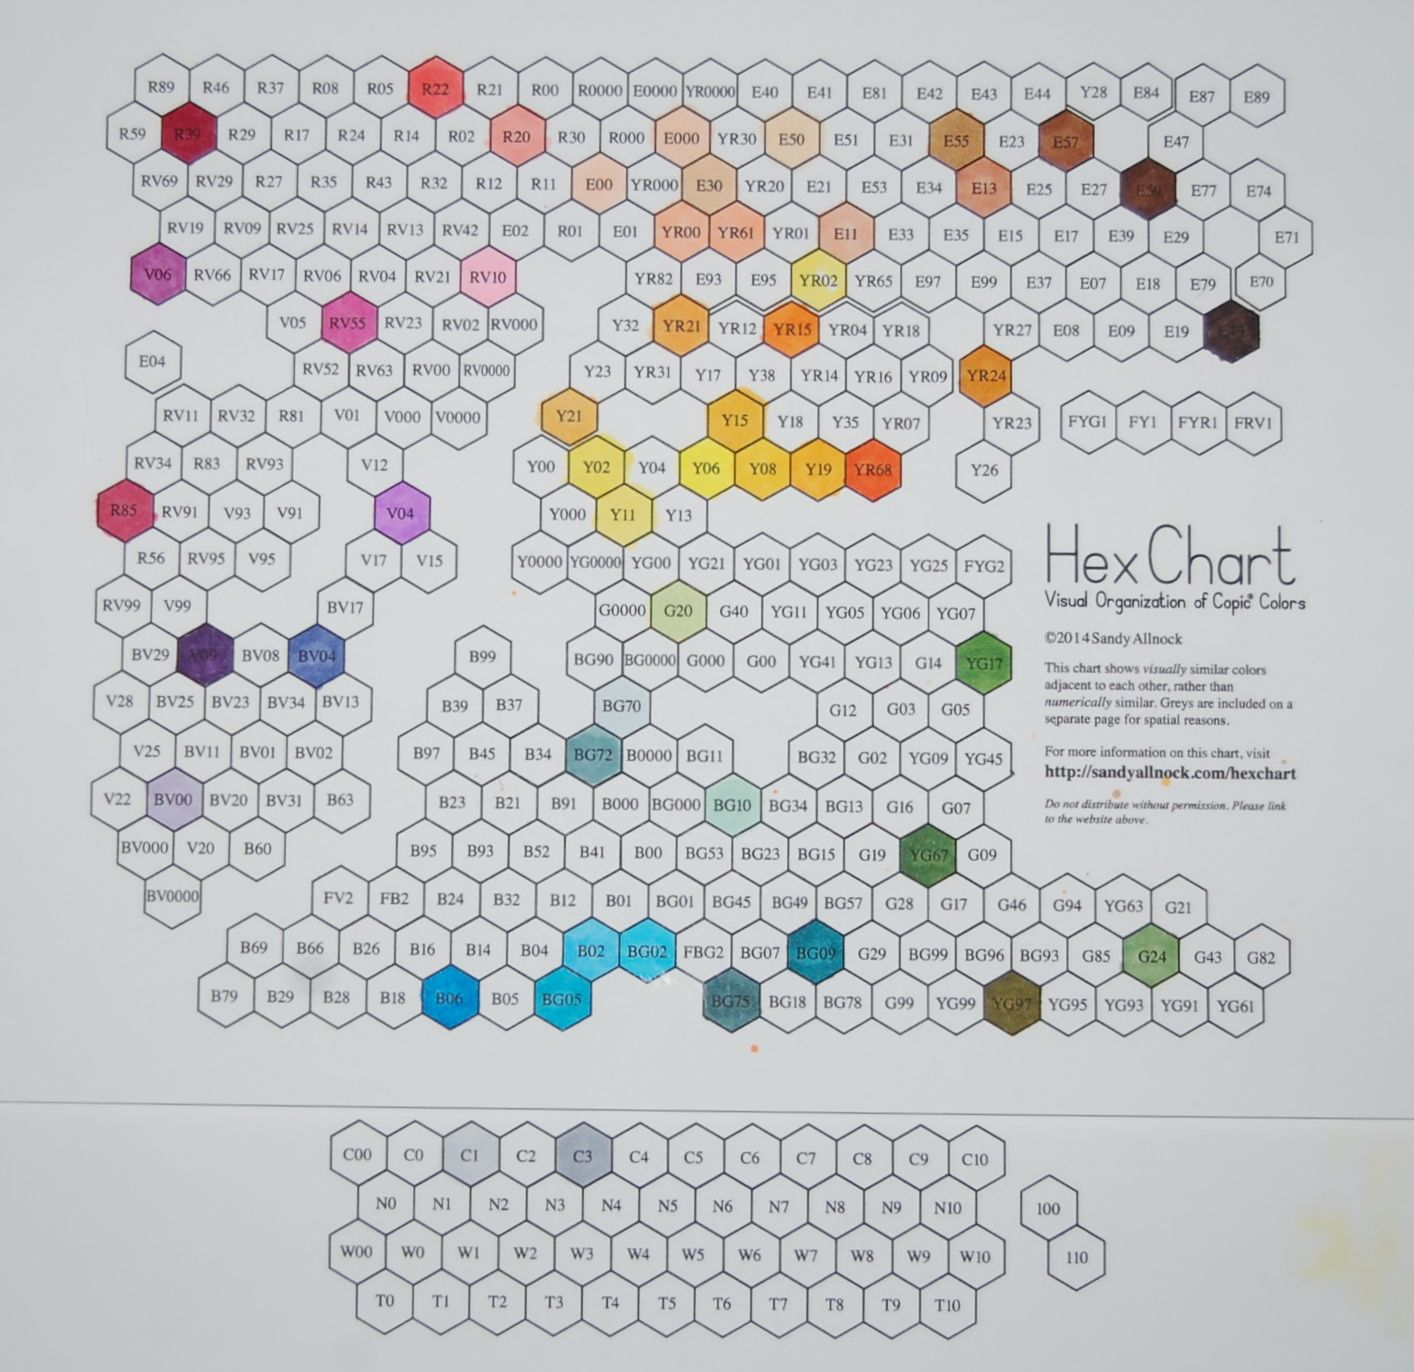 Free copic sketch marker color chart blank copicmarkers free copic sketch marker color chart blank copicmarkers pinterest copic sketch markers copic sketch and sketch markers nvjuhfo Images